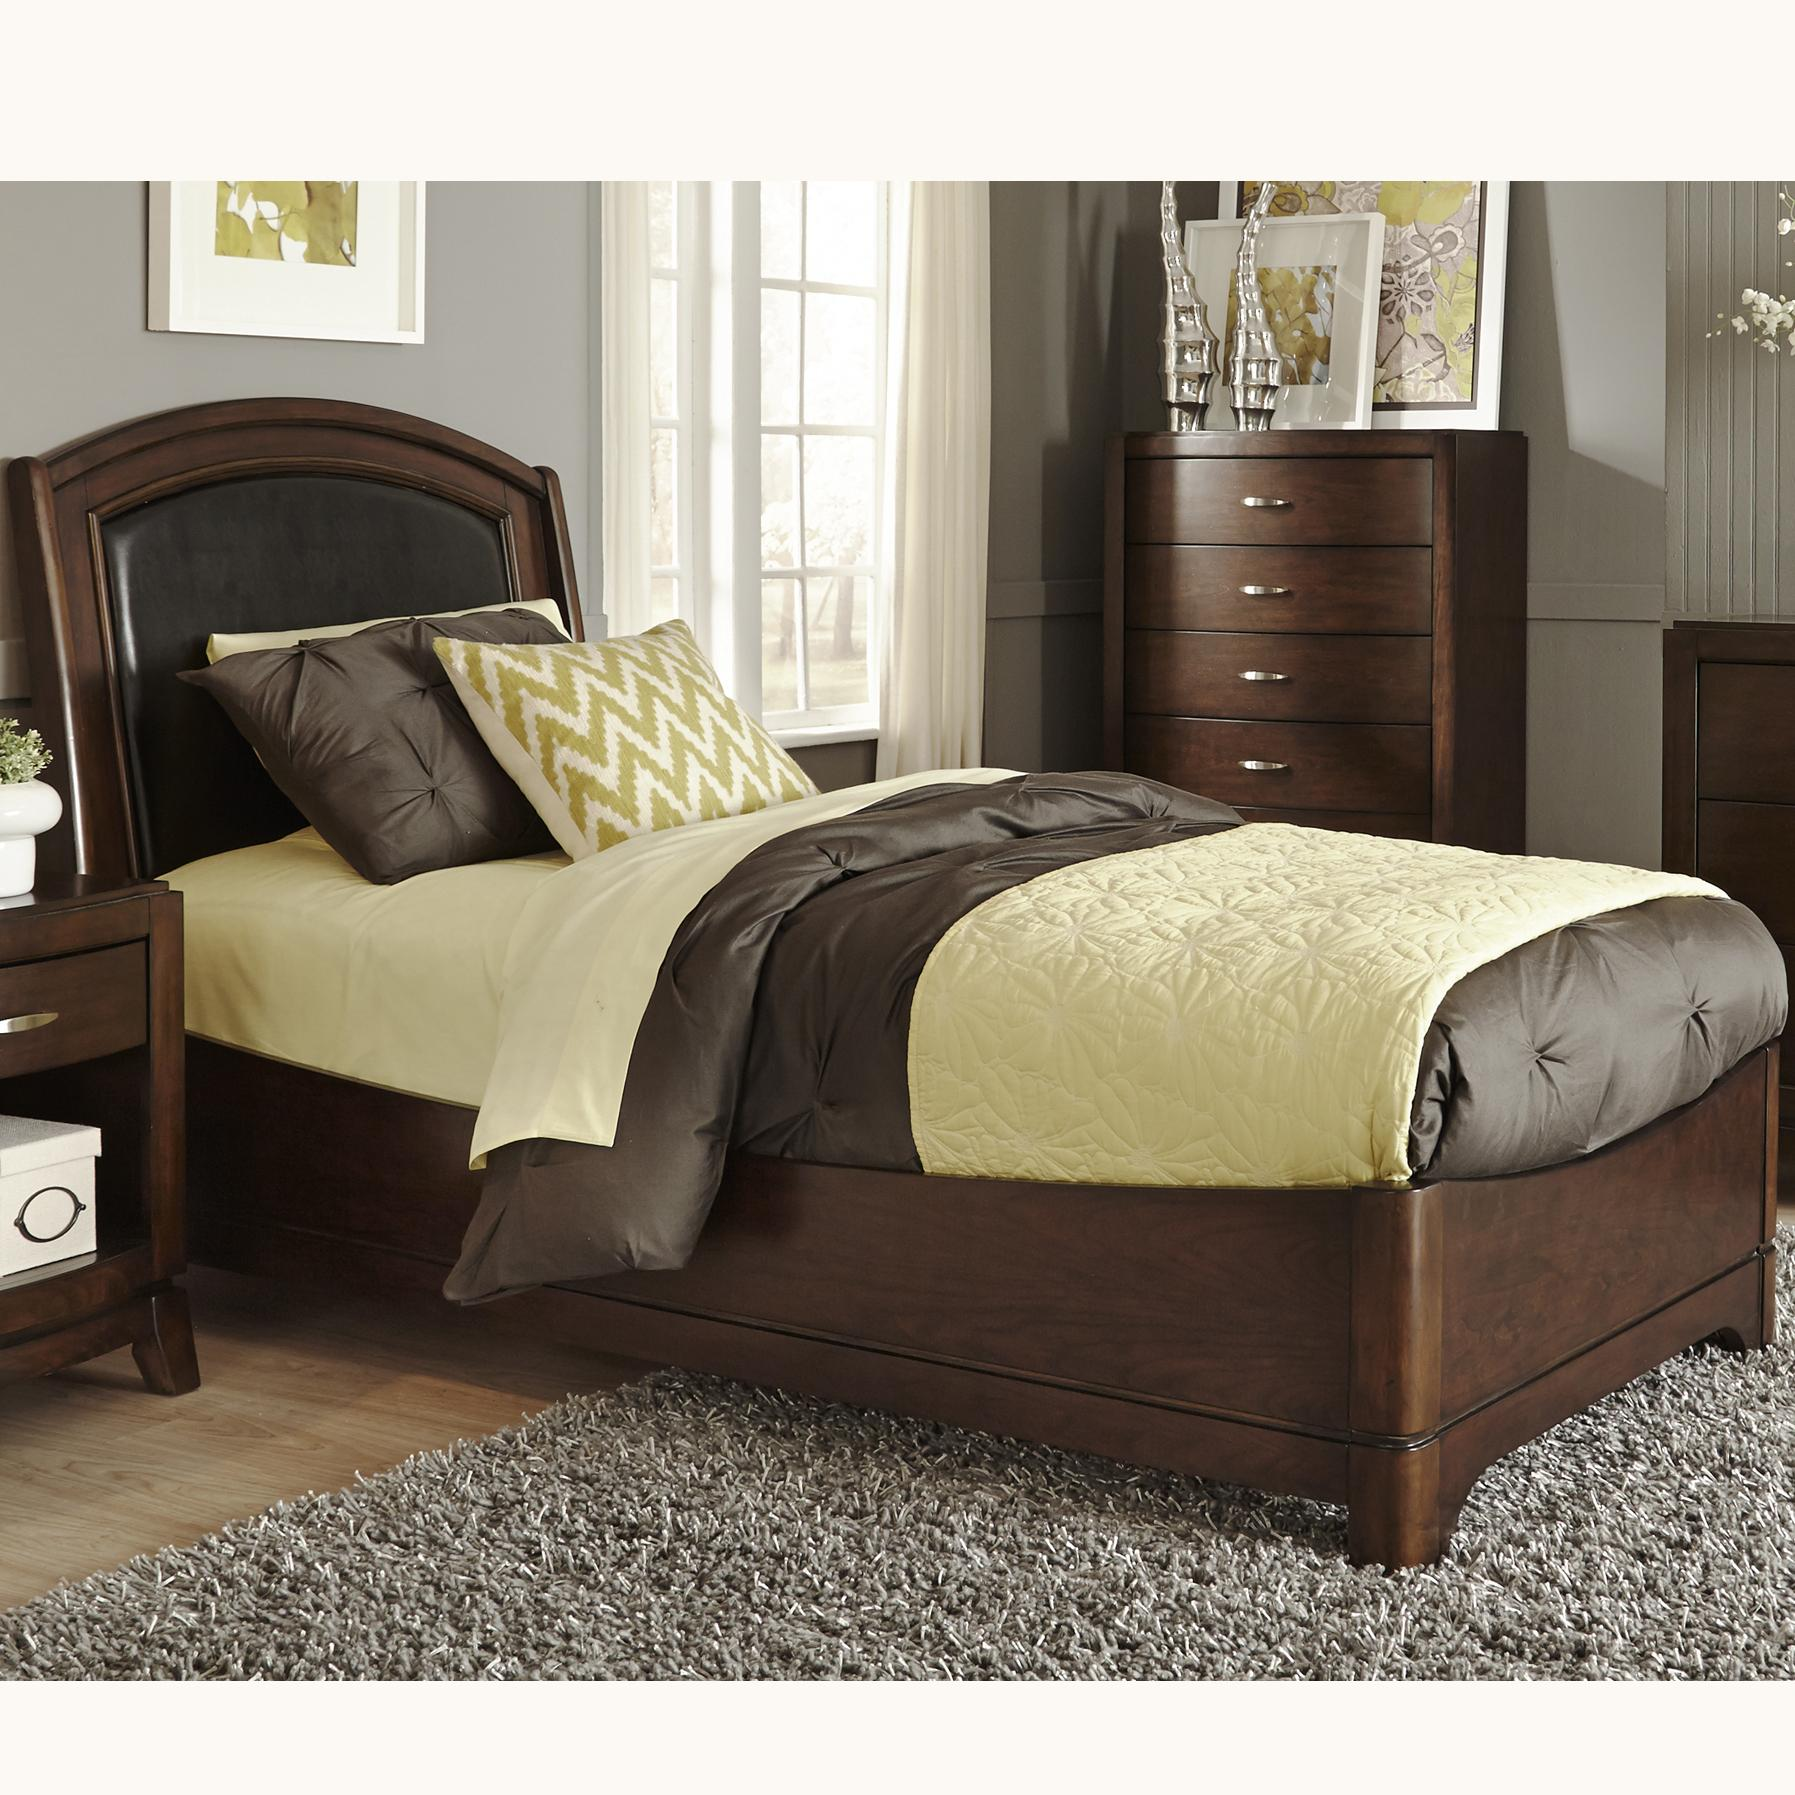 Leather Bed Frame Avalon Full Bed With Arched Leather Headboard By Liberty Furniture At Royal Furniture